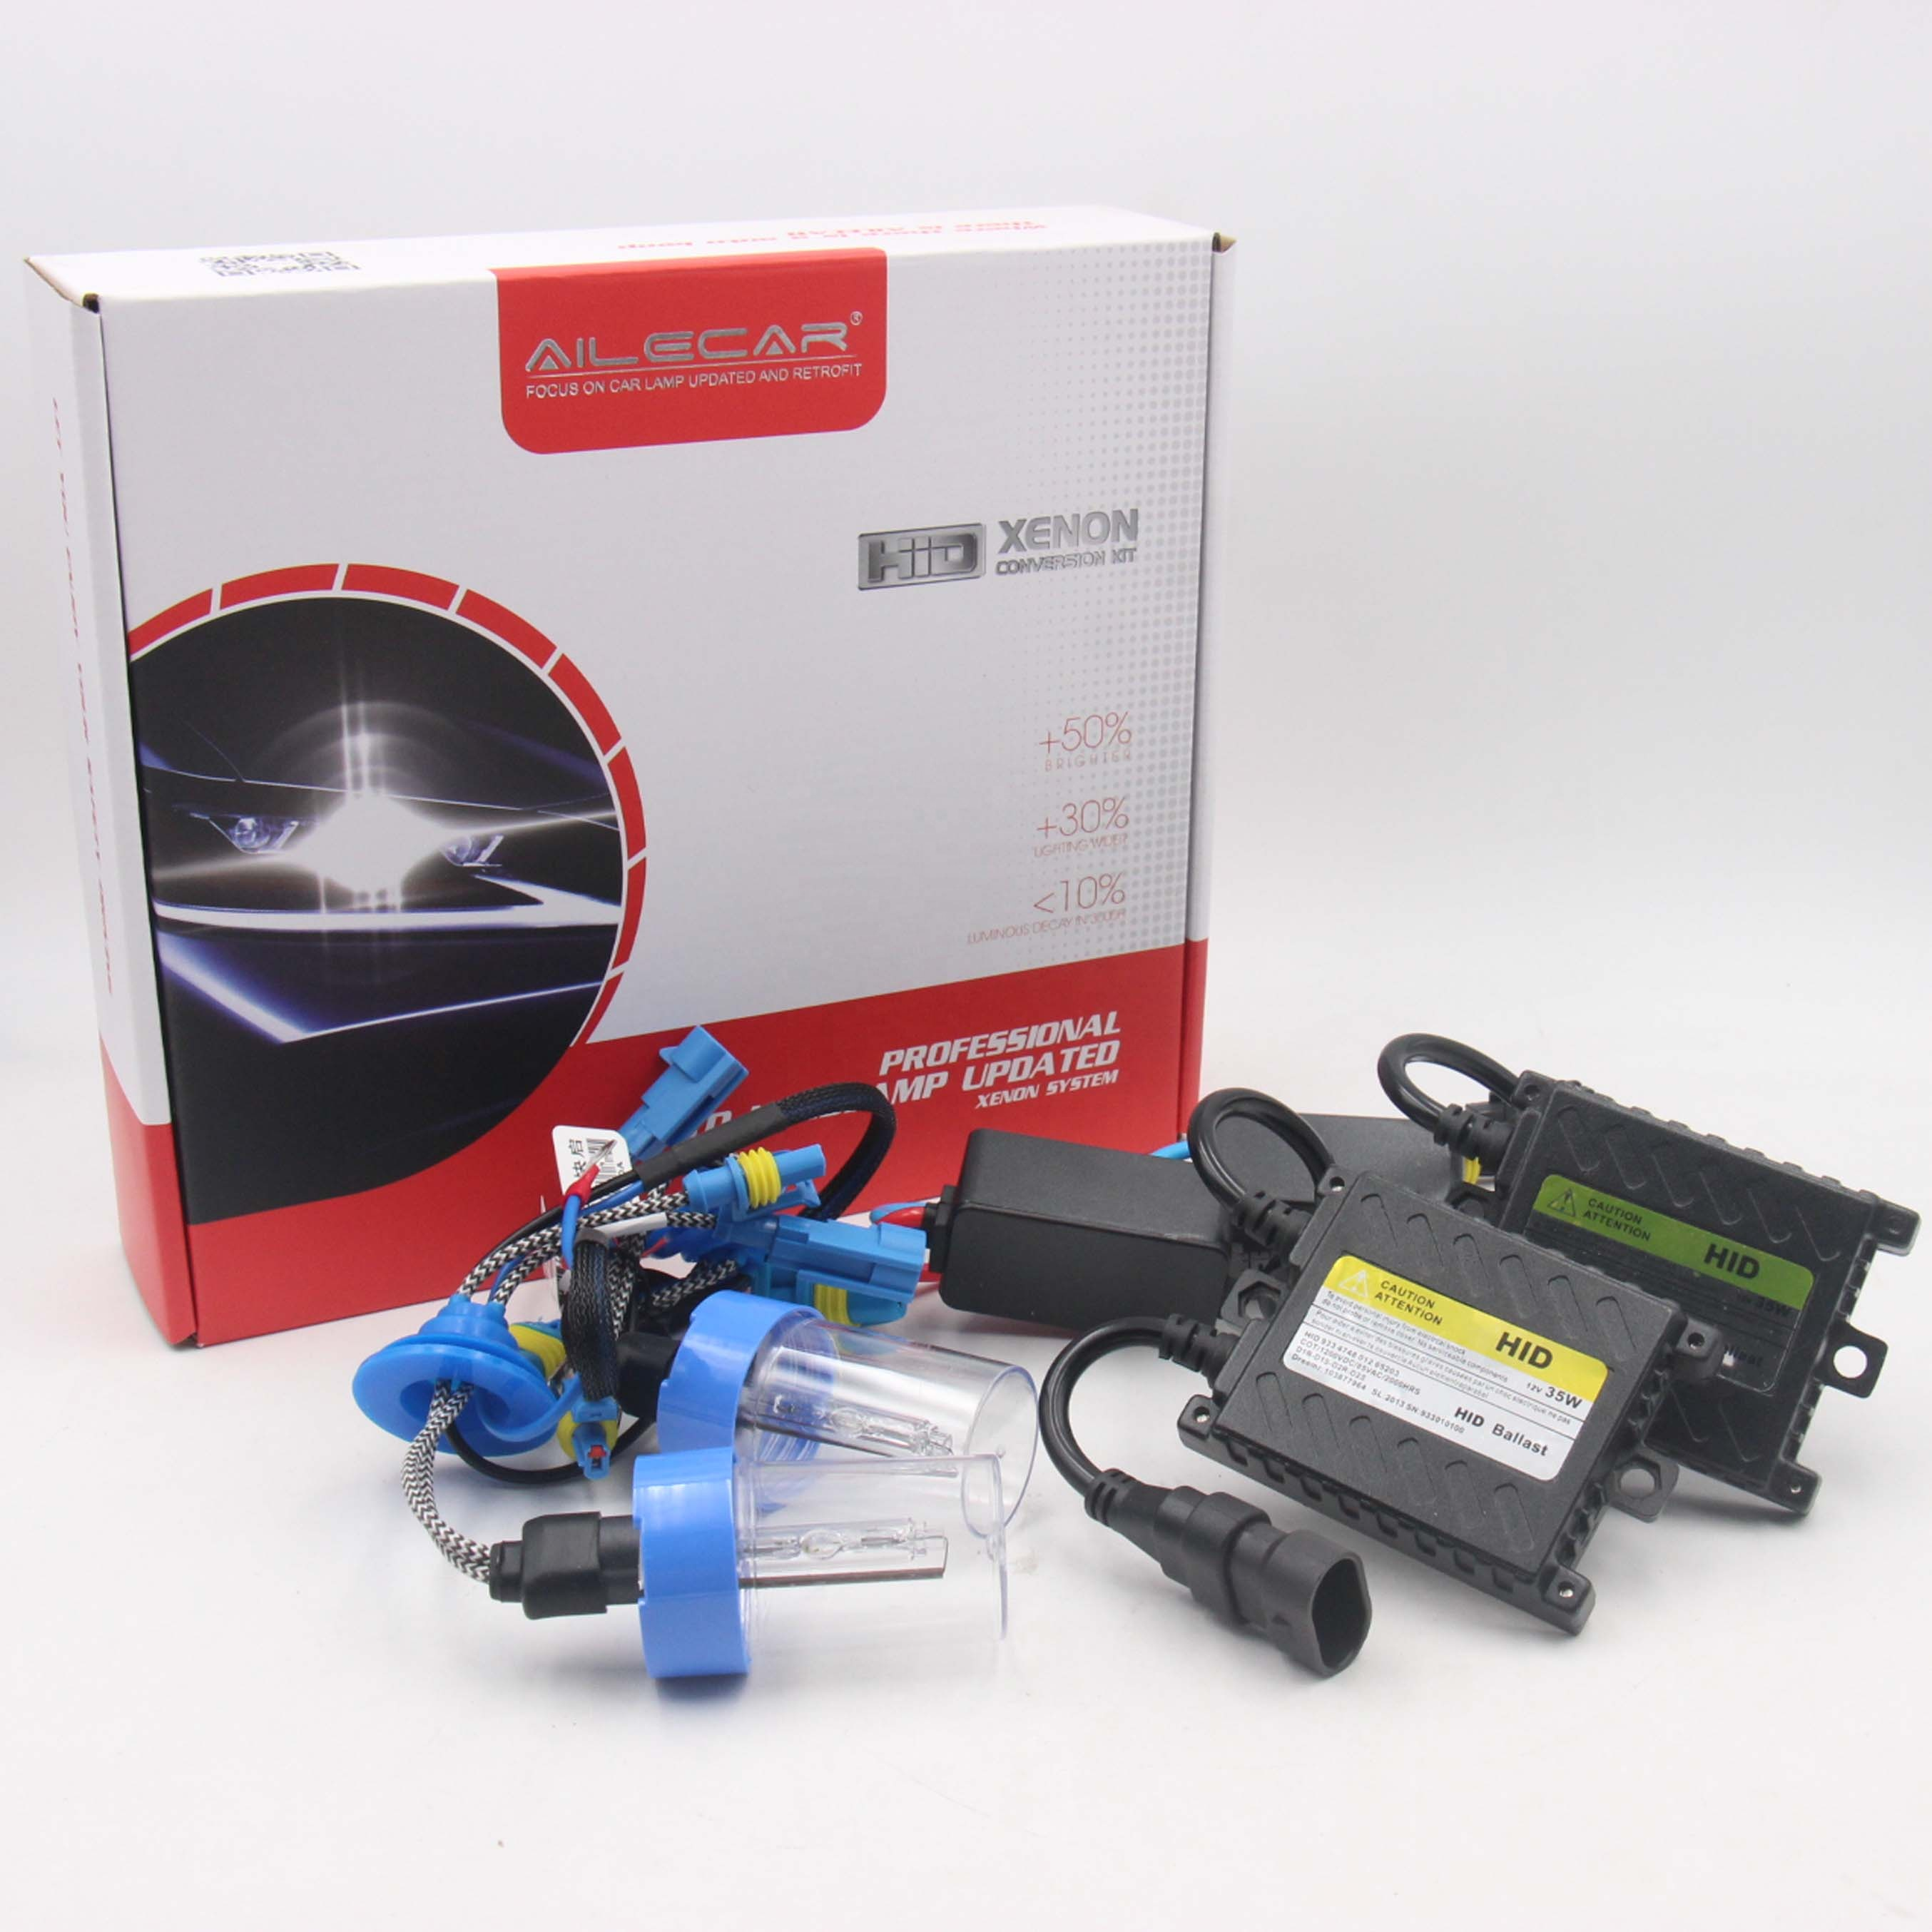 Quick Start 35W <strong>Hid</strong> xenon Conversion <strong>Kit</strong> <strong>HID</strong> xenon bulb / <strong>HID</strong> xenon ballast